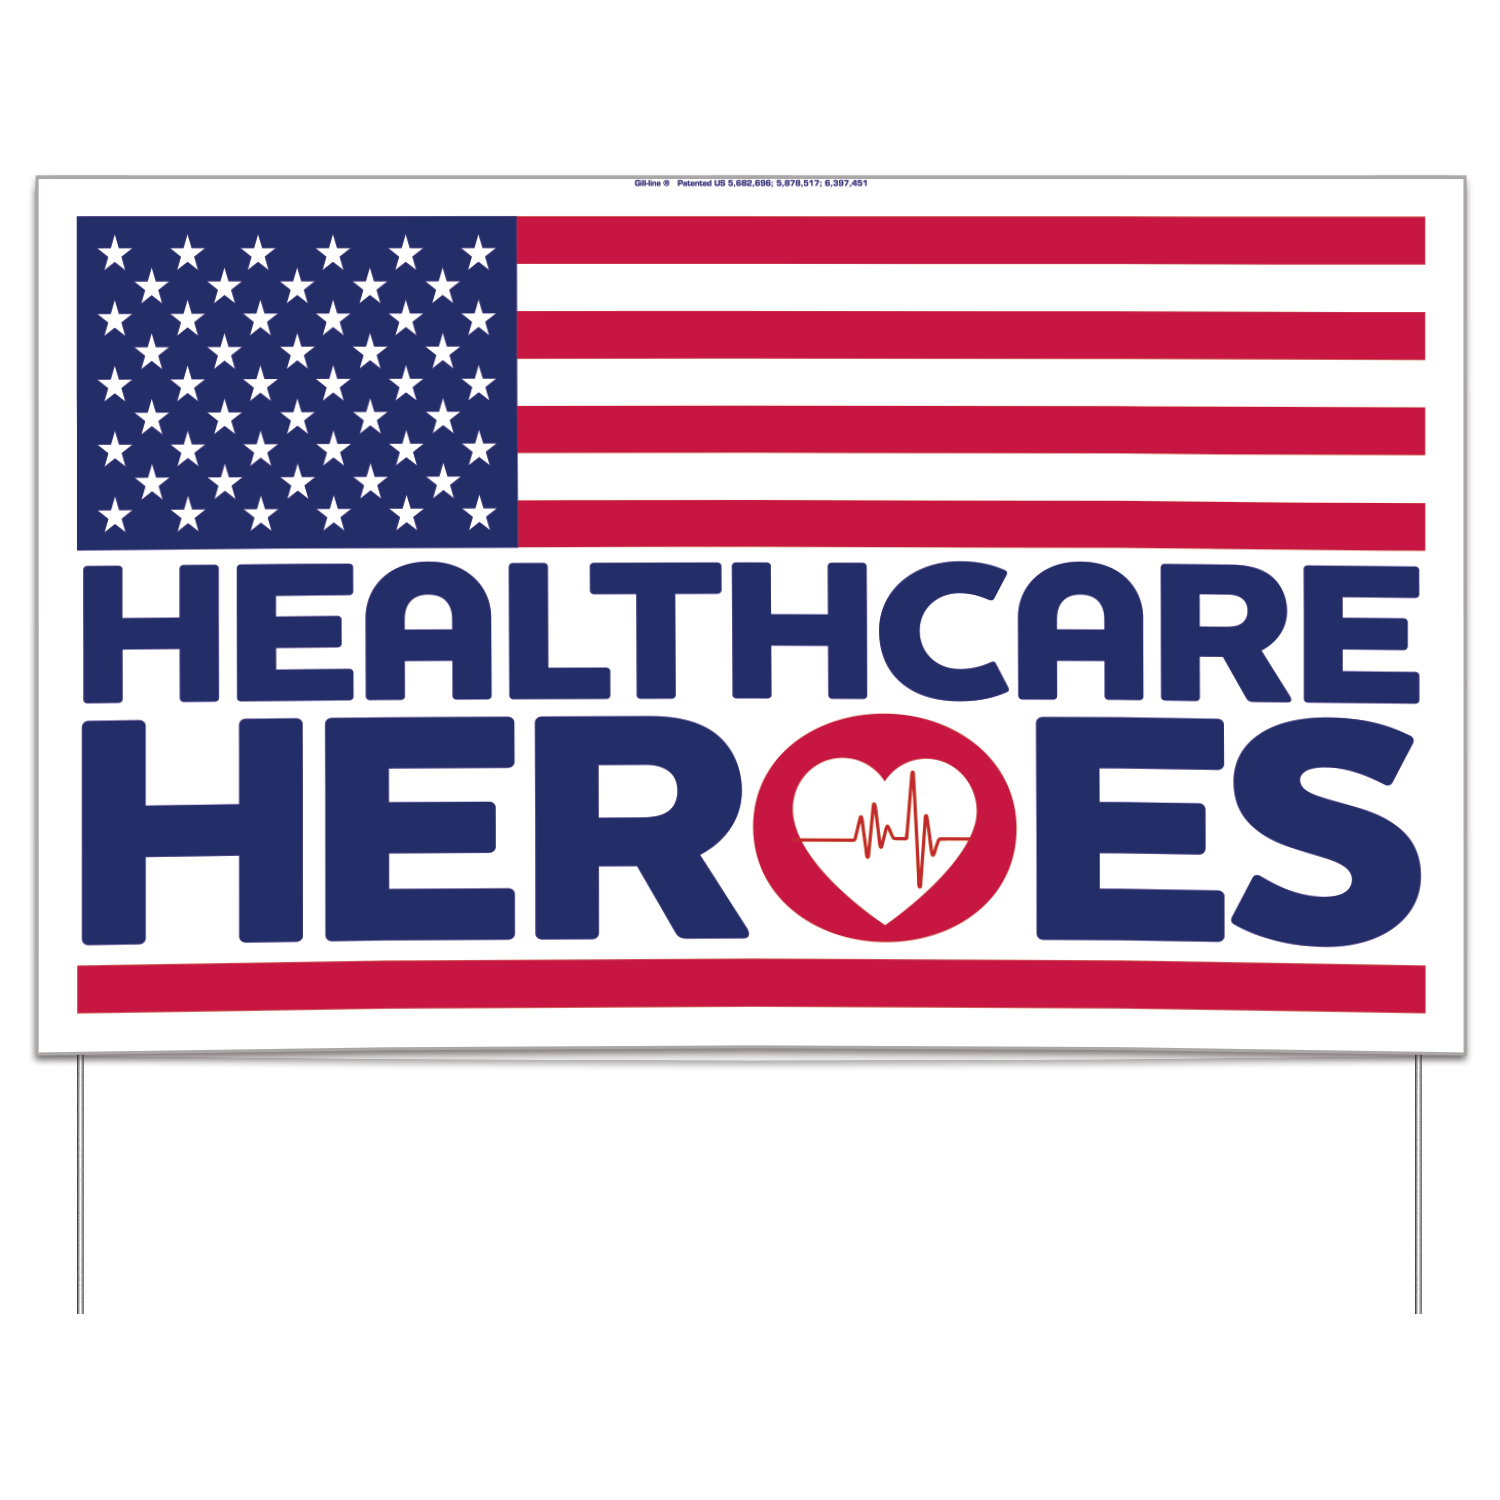 https://www.sswprinting.com/images/products_gallery_images/594001_Healthcare-Heroes_hi-res.png